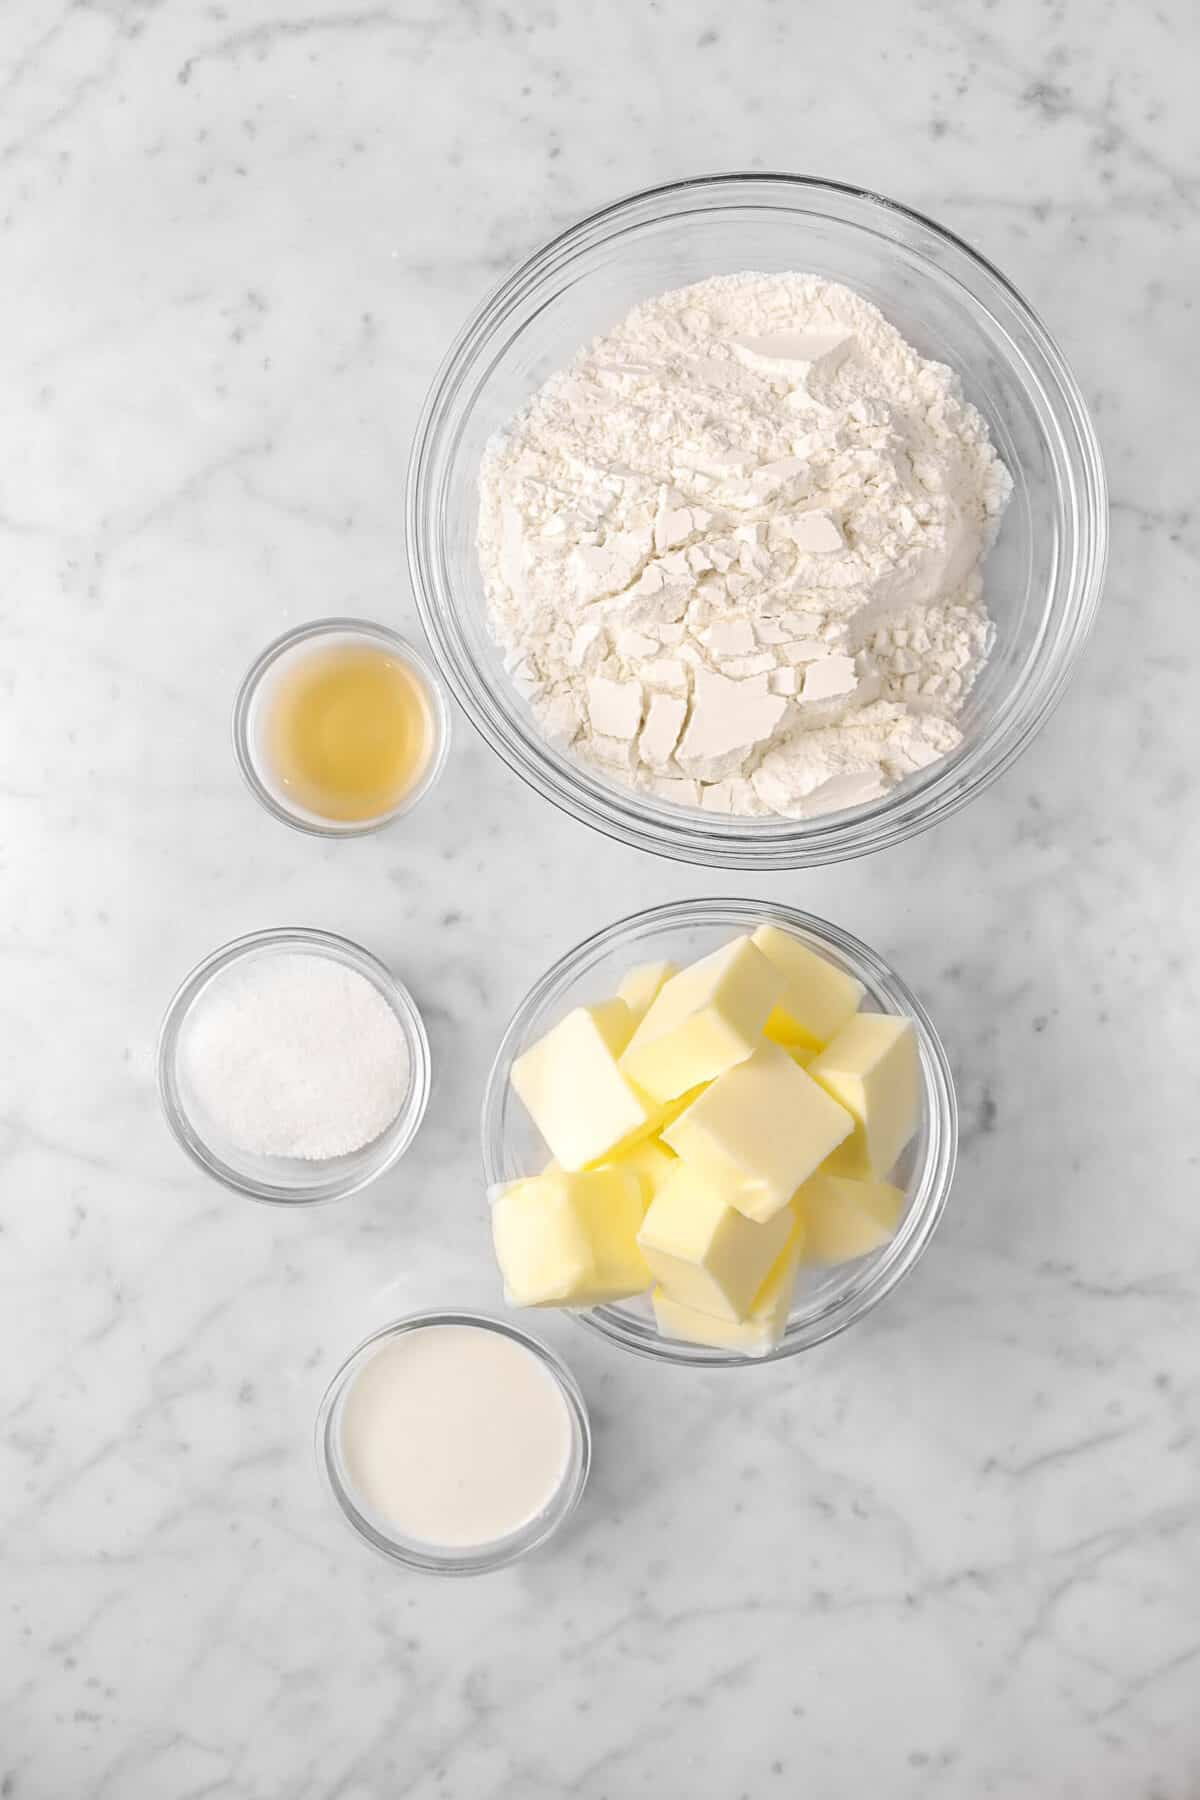 flour, apple cider vinegar, sugar, butter, and cream on a marble counter